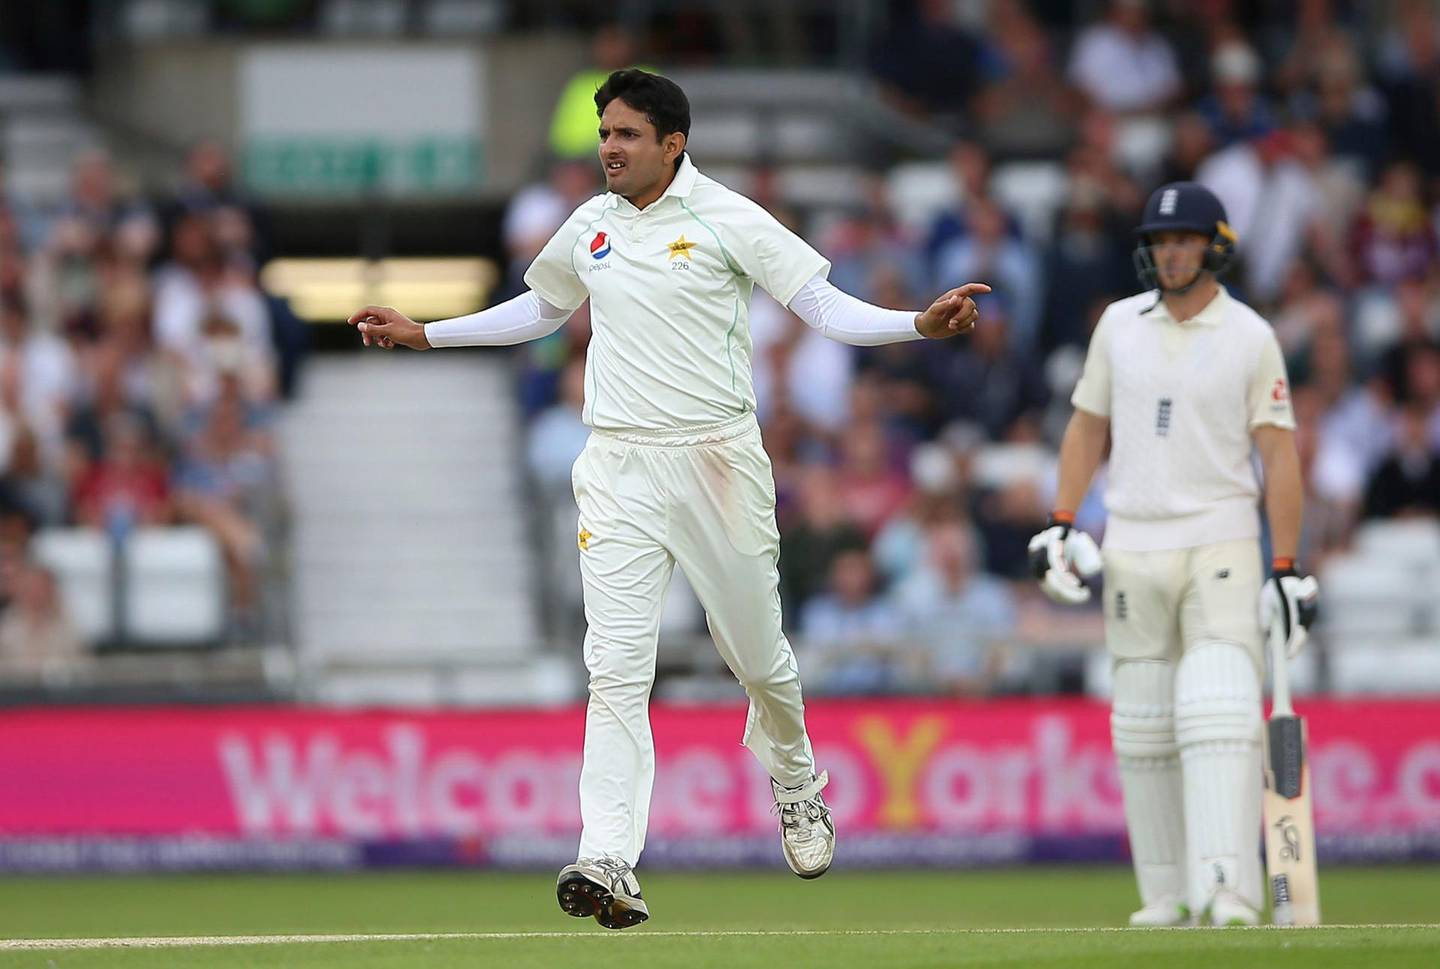 Pakistan's Mohammad Abbas celebrates after taking the wicket of England's Sam Curran on day three of the second test match at Headingley, Leeds, England, Sunday June 3, 2018. (Nigel French/PA via AP)